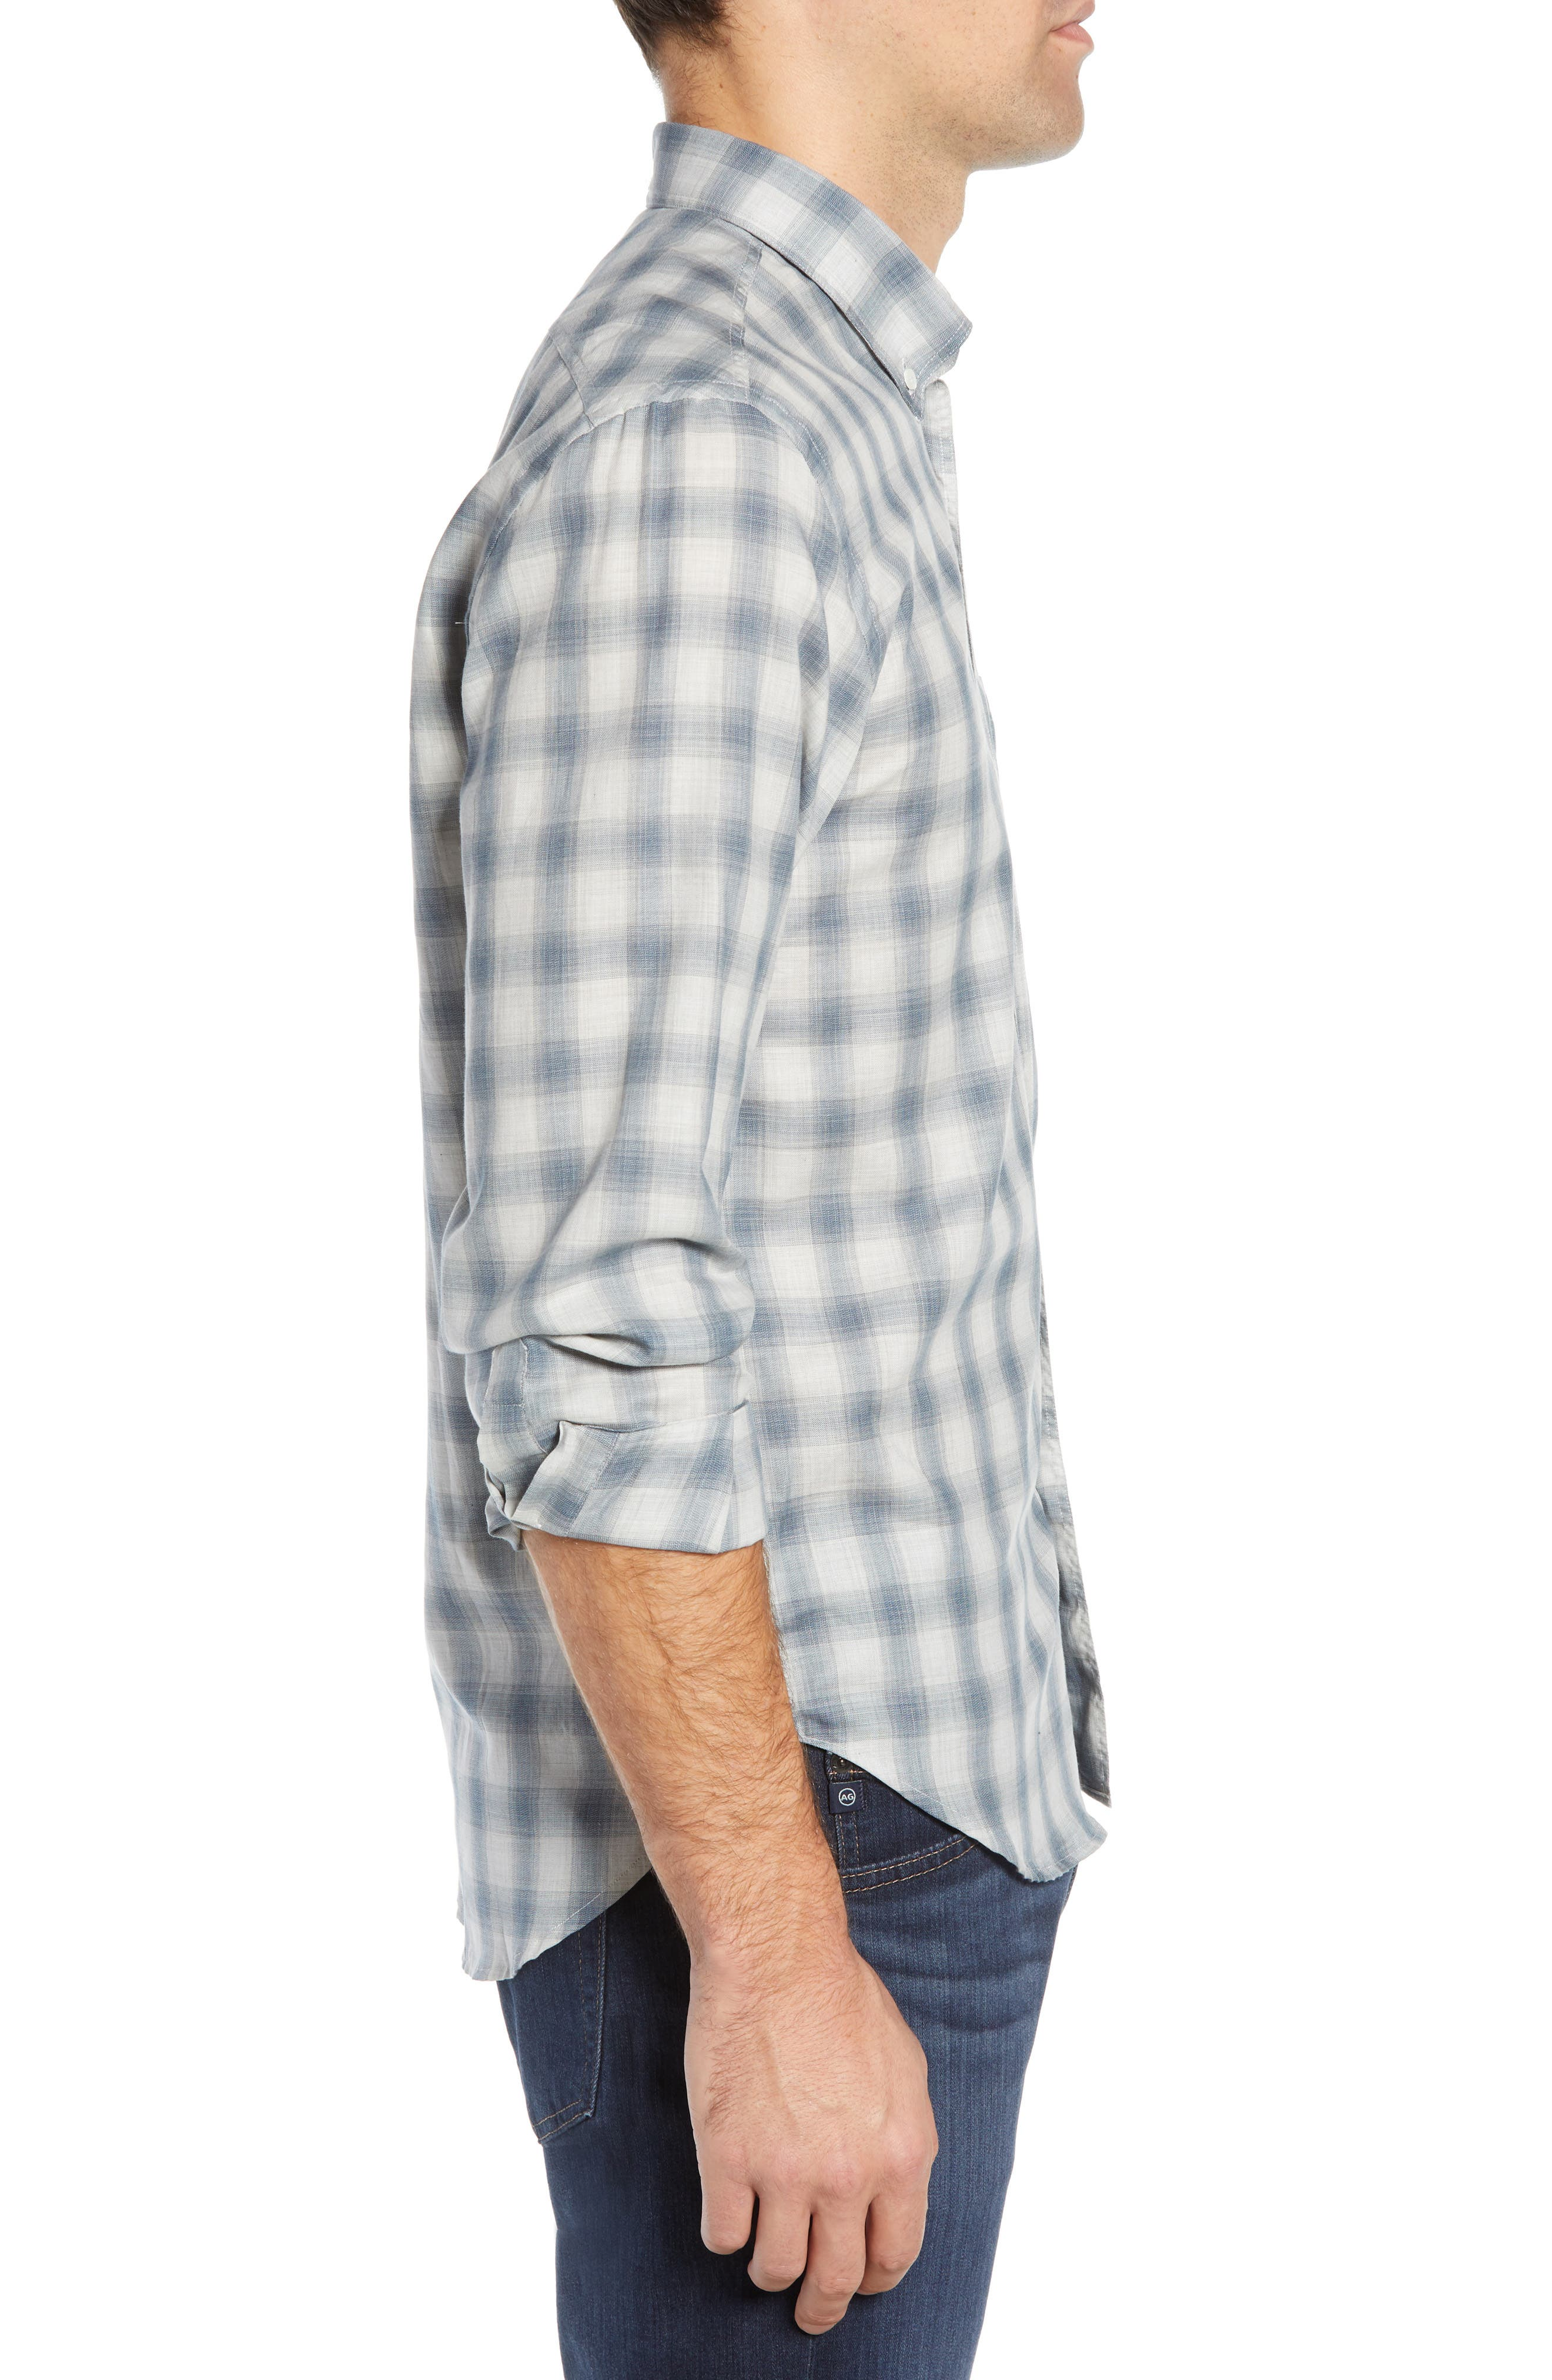 Tuscumbia Regular Fit Pattern Sport Shirt,                             Alternate thumbnail 4, color,                             BLUE/ GREY